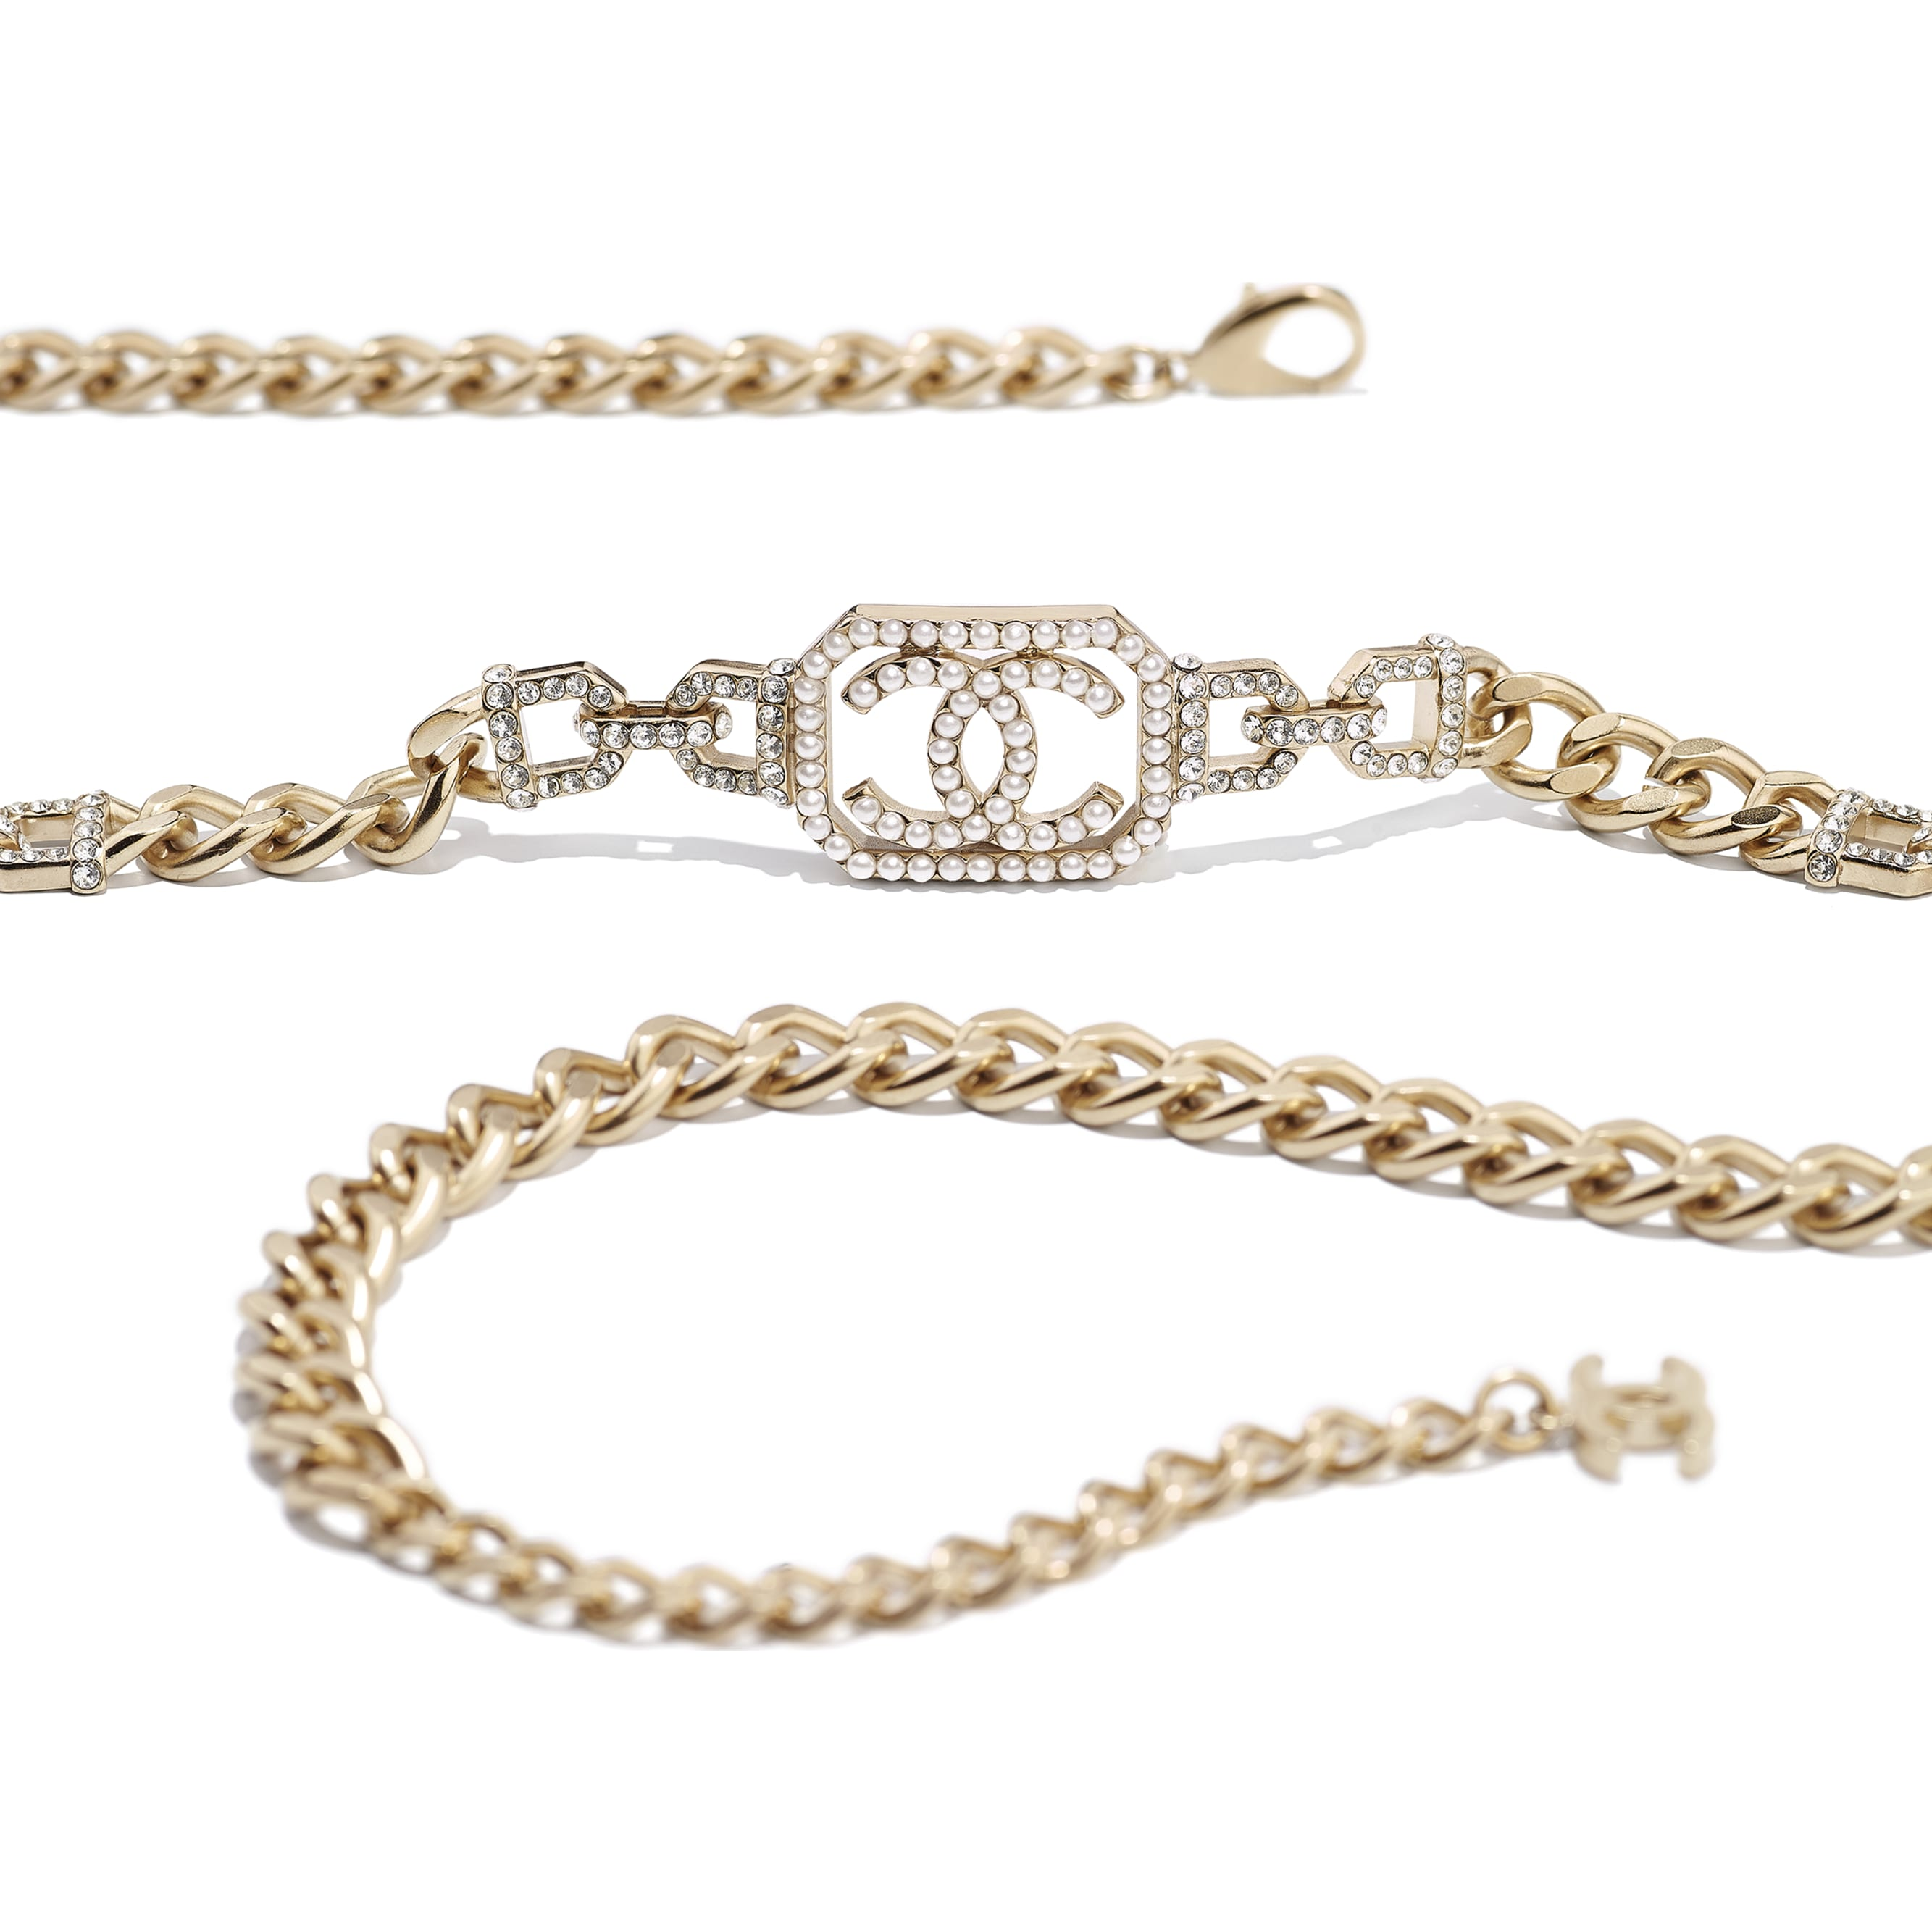 Belt - Gold, Pearly White & Crystal - Metal, Imitation Pearls & Diamanté - CHANEL - Alternative view - see standard sized version